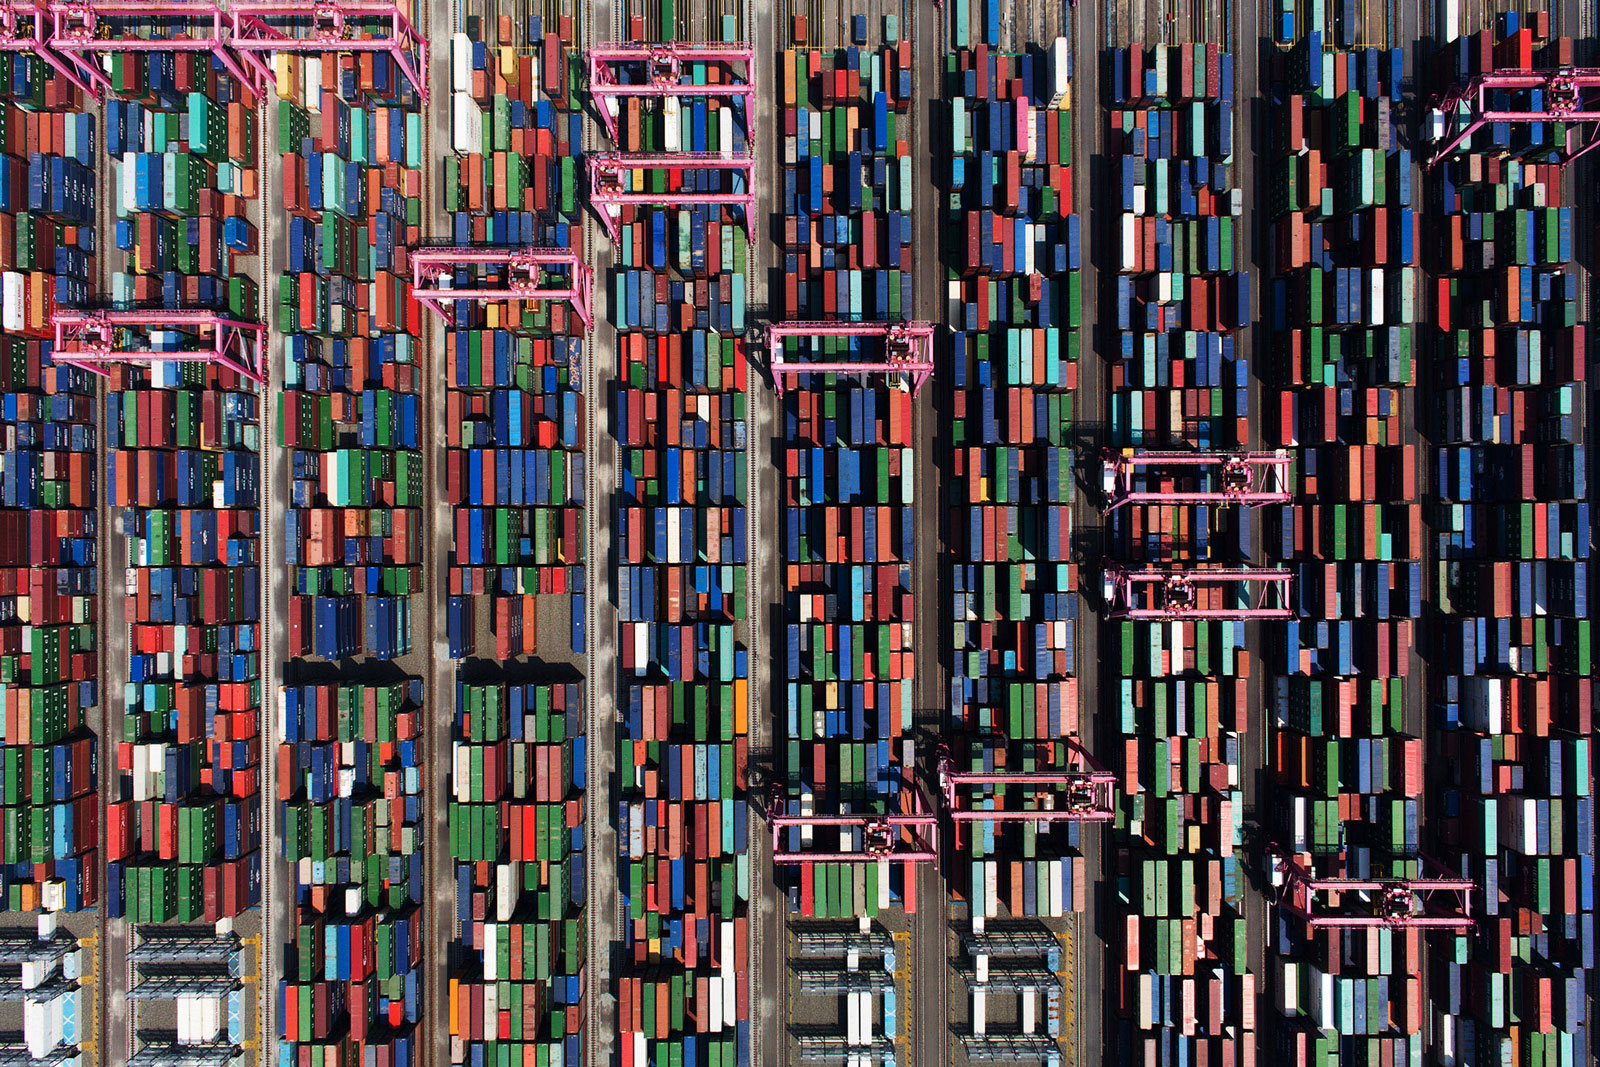 Shipping containers sit stacked among gantry cranes at the BNCT container terminal at Busan New Port in Busan, South Korea